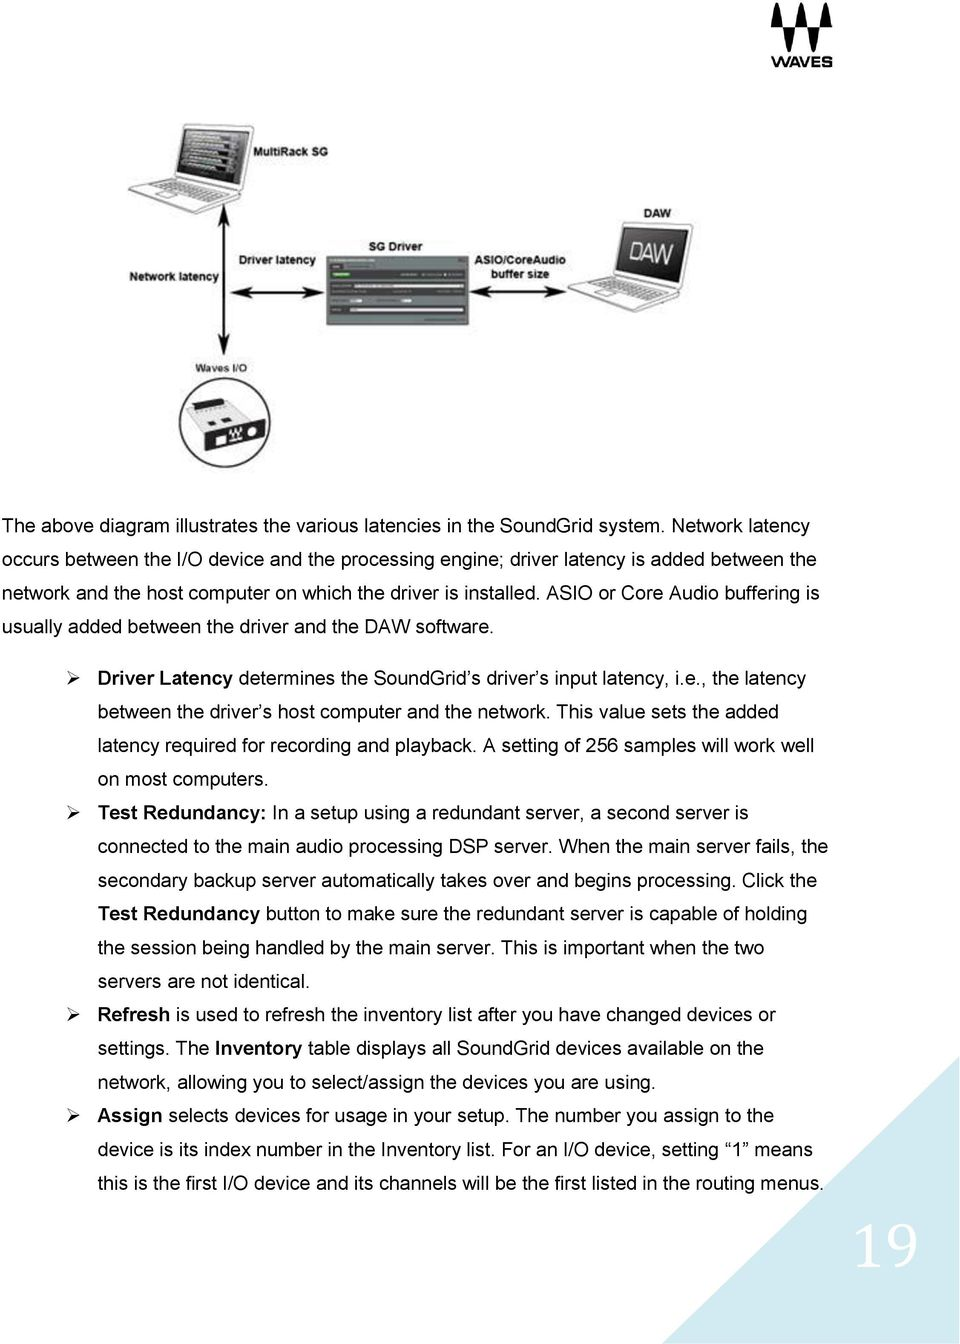 ASIO or Core Audio buffering is usually added between the driver and the DAW software. Driver Latency determines the SoundGrid s driver s input latency, i.e., the latency between the driver s host computer and the network.